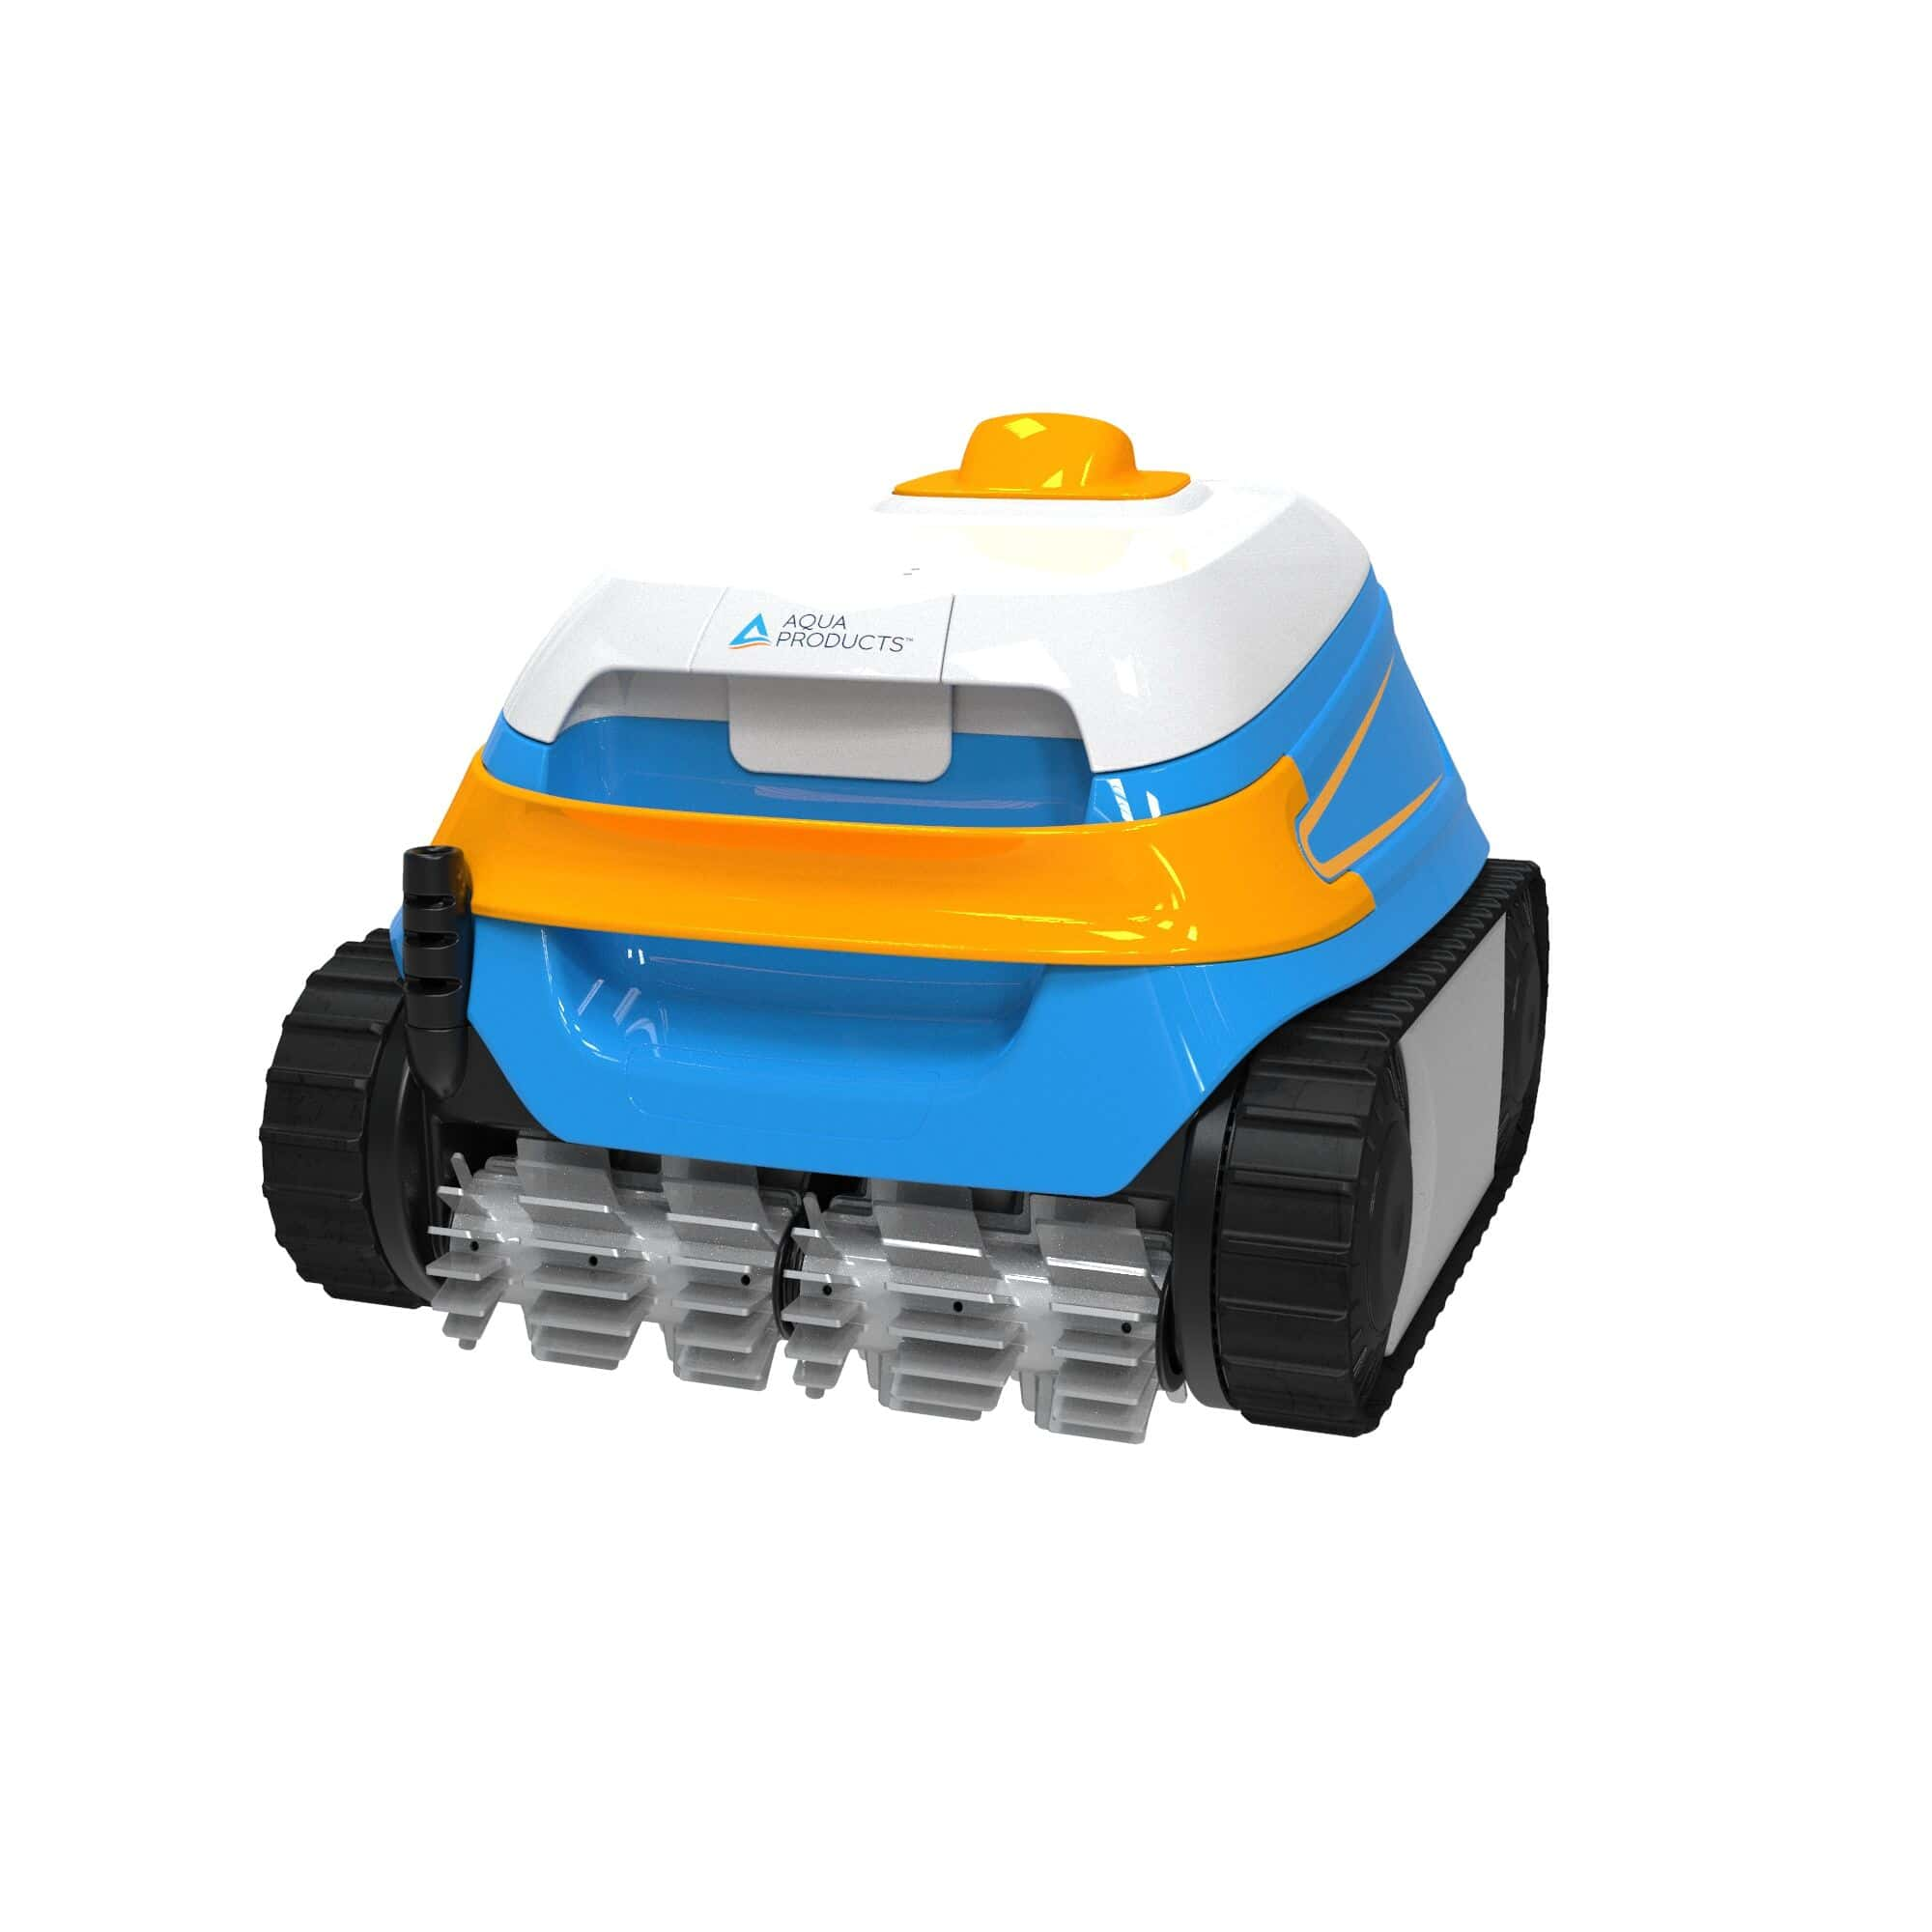 Aqua Products Evo 614iQ Smart Pool Robot